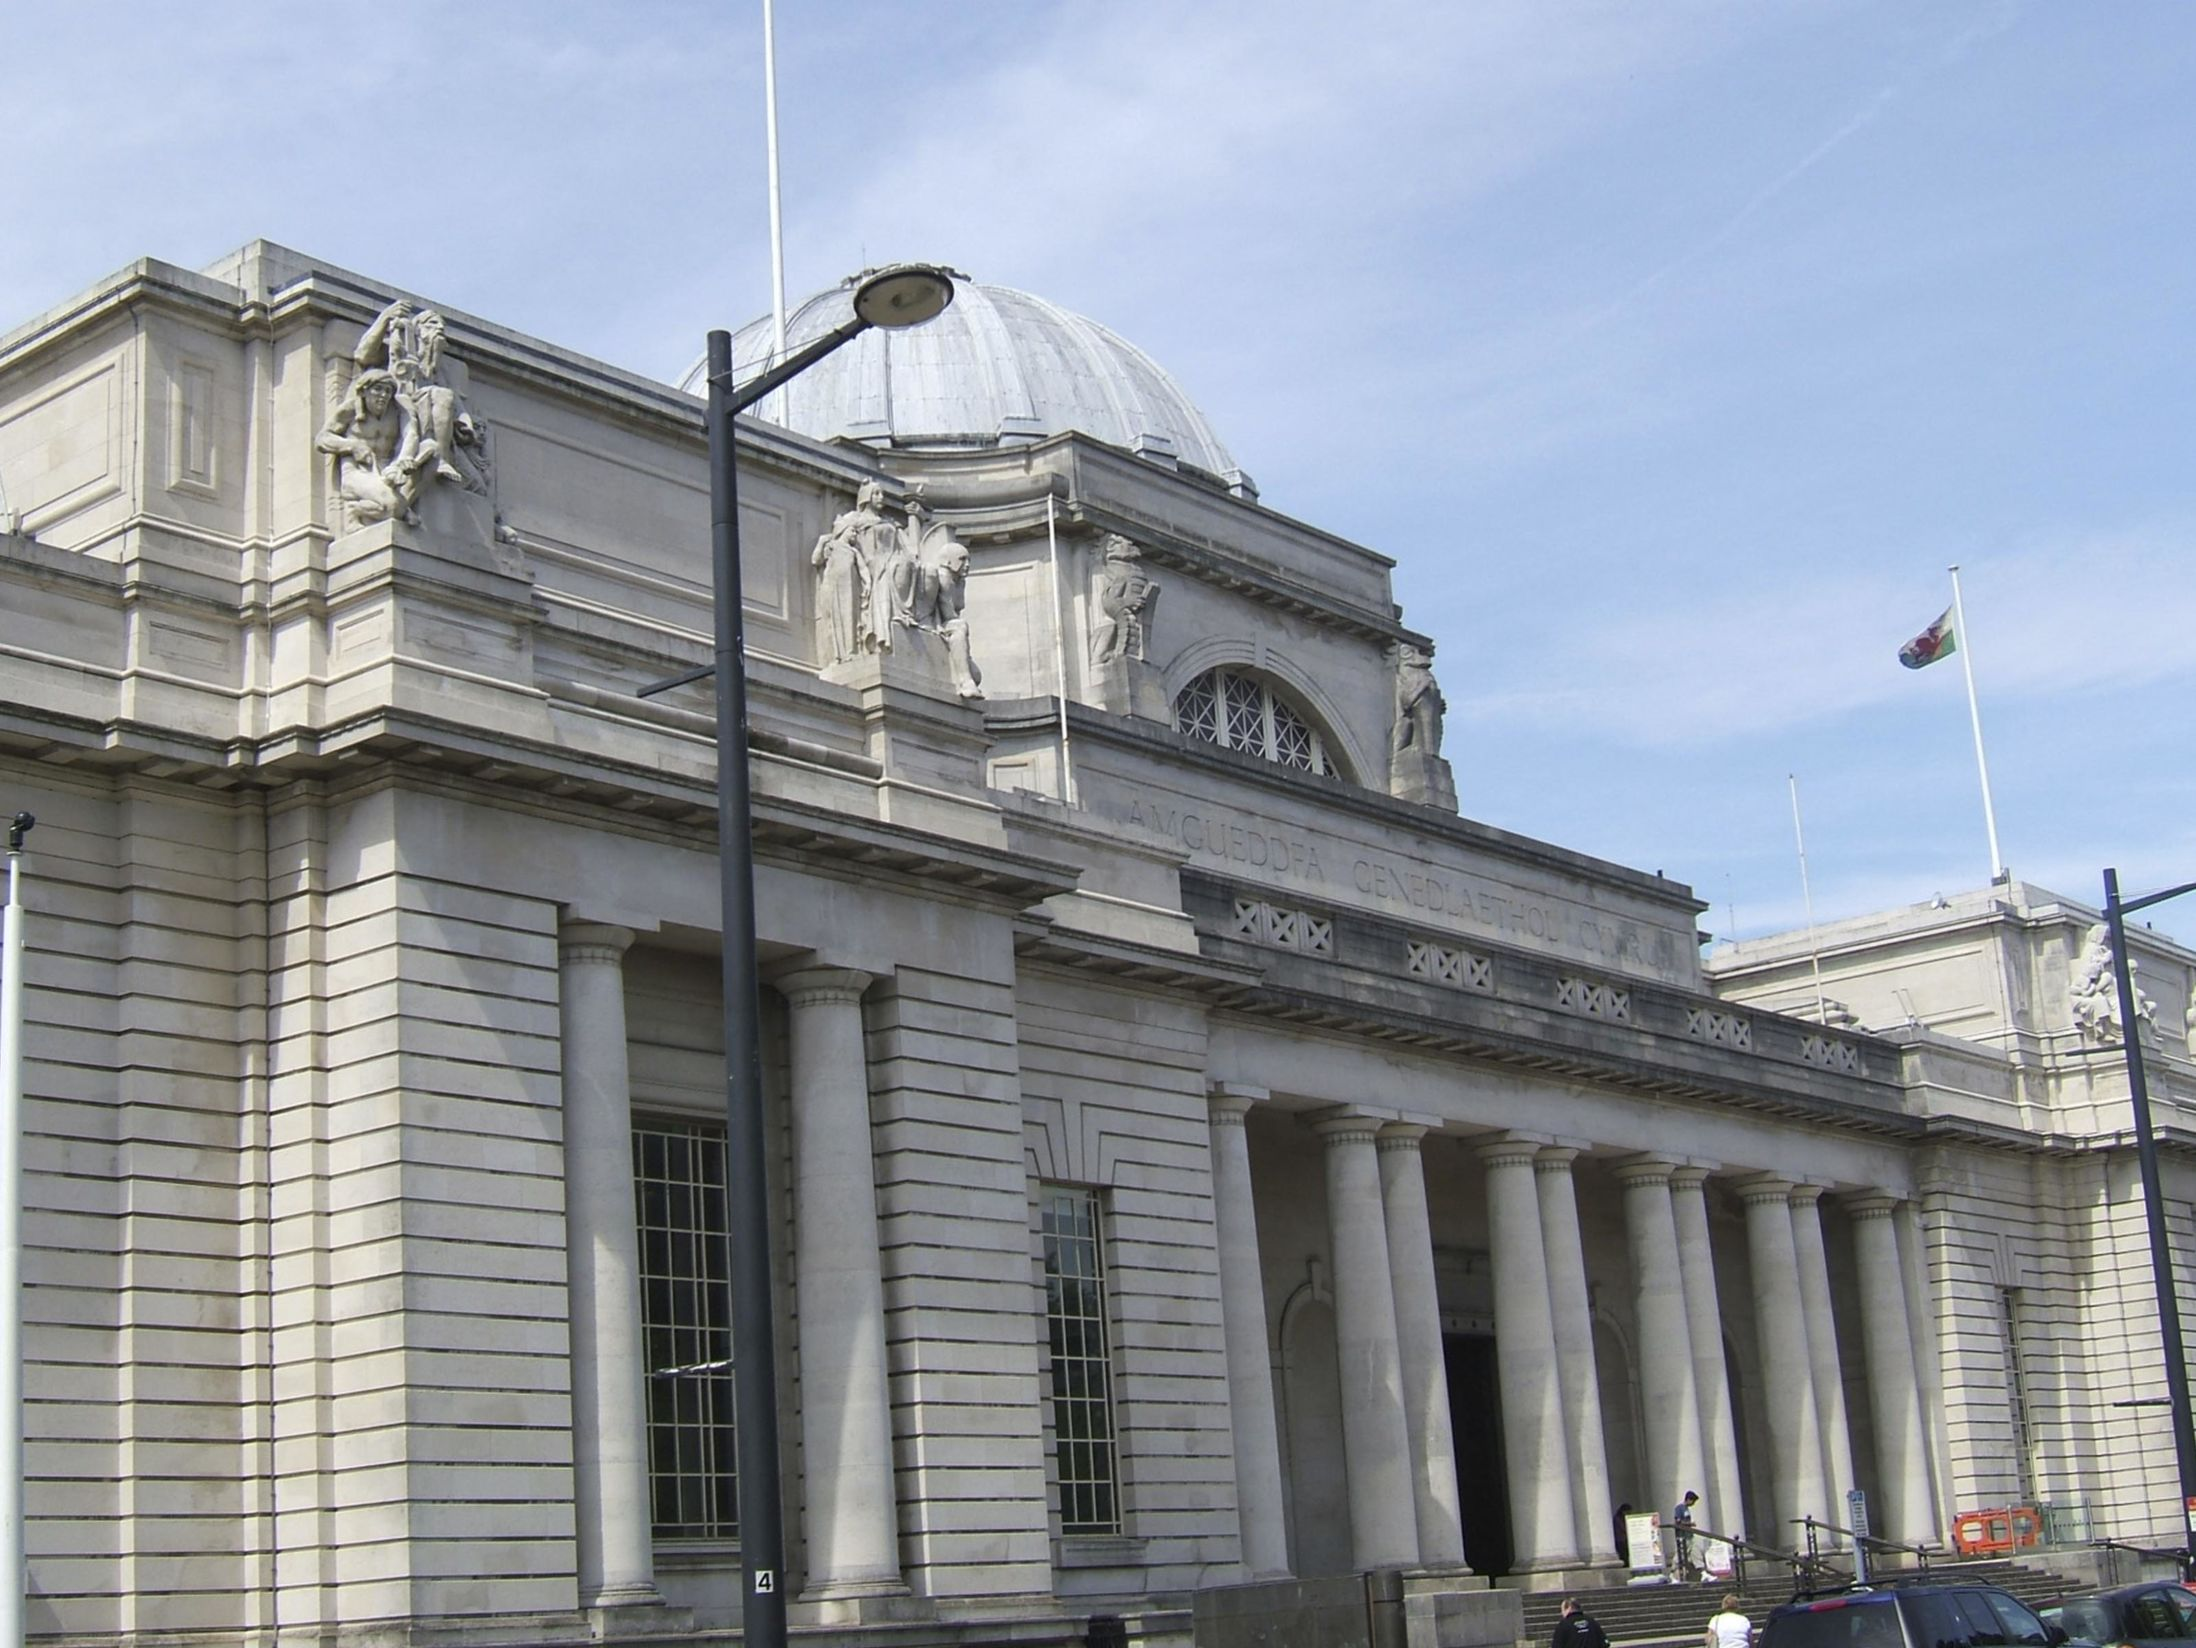 Things to do in Cardiff - National Museum Cardiff